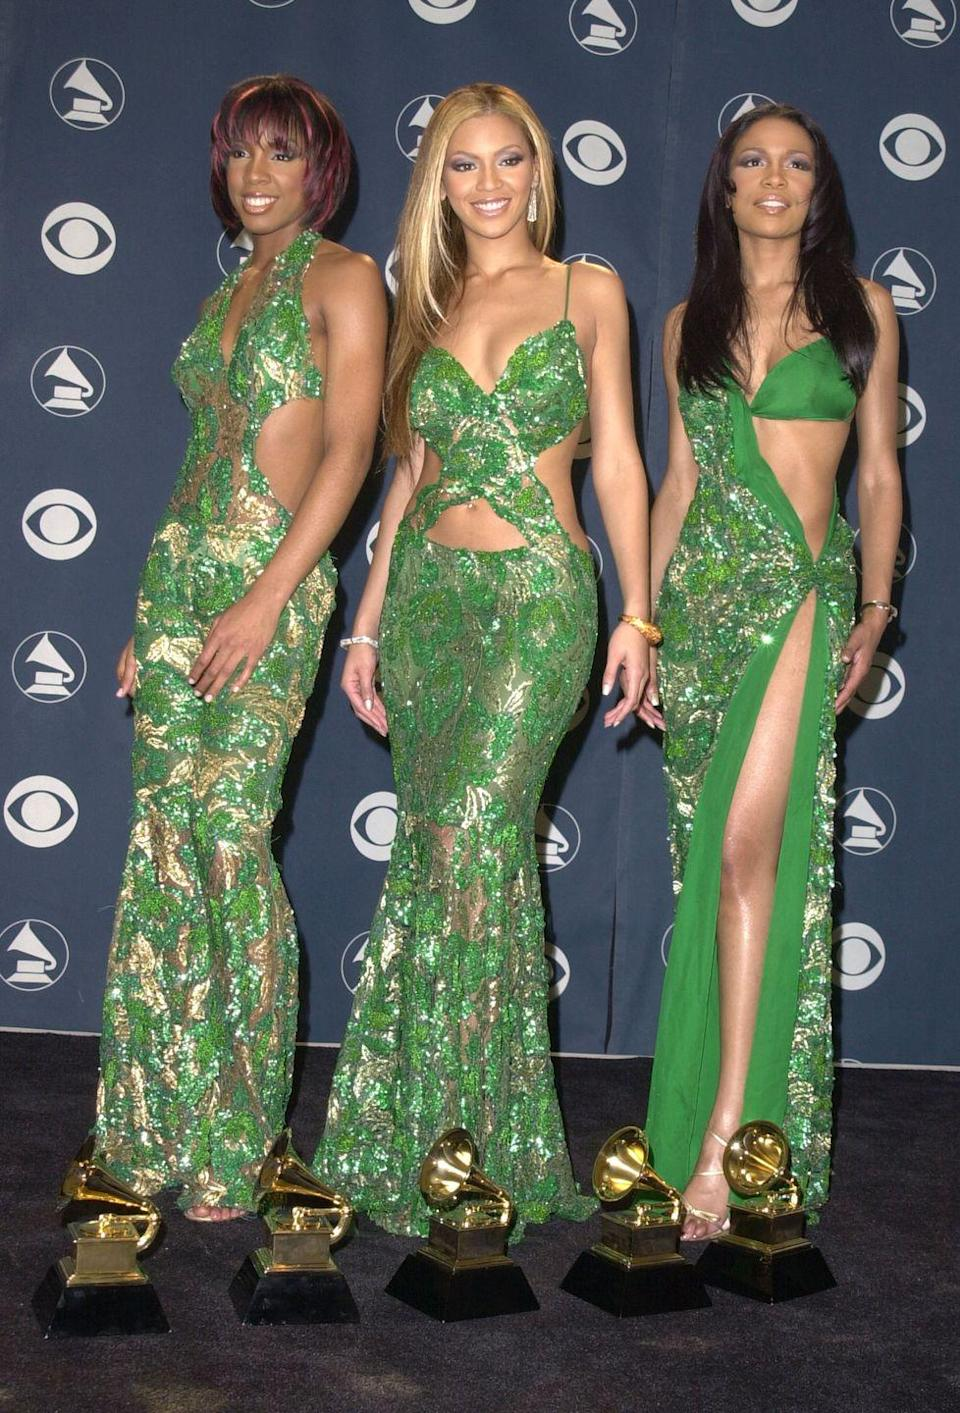 <p>Remember when Beyoncé wasn't allowed in public without wearing an outfit that matched her group members? Lol, how quaint. </p>